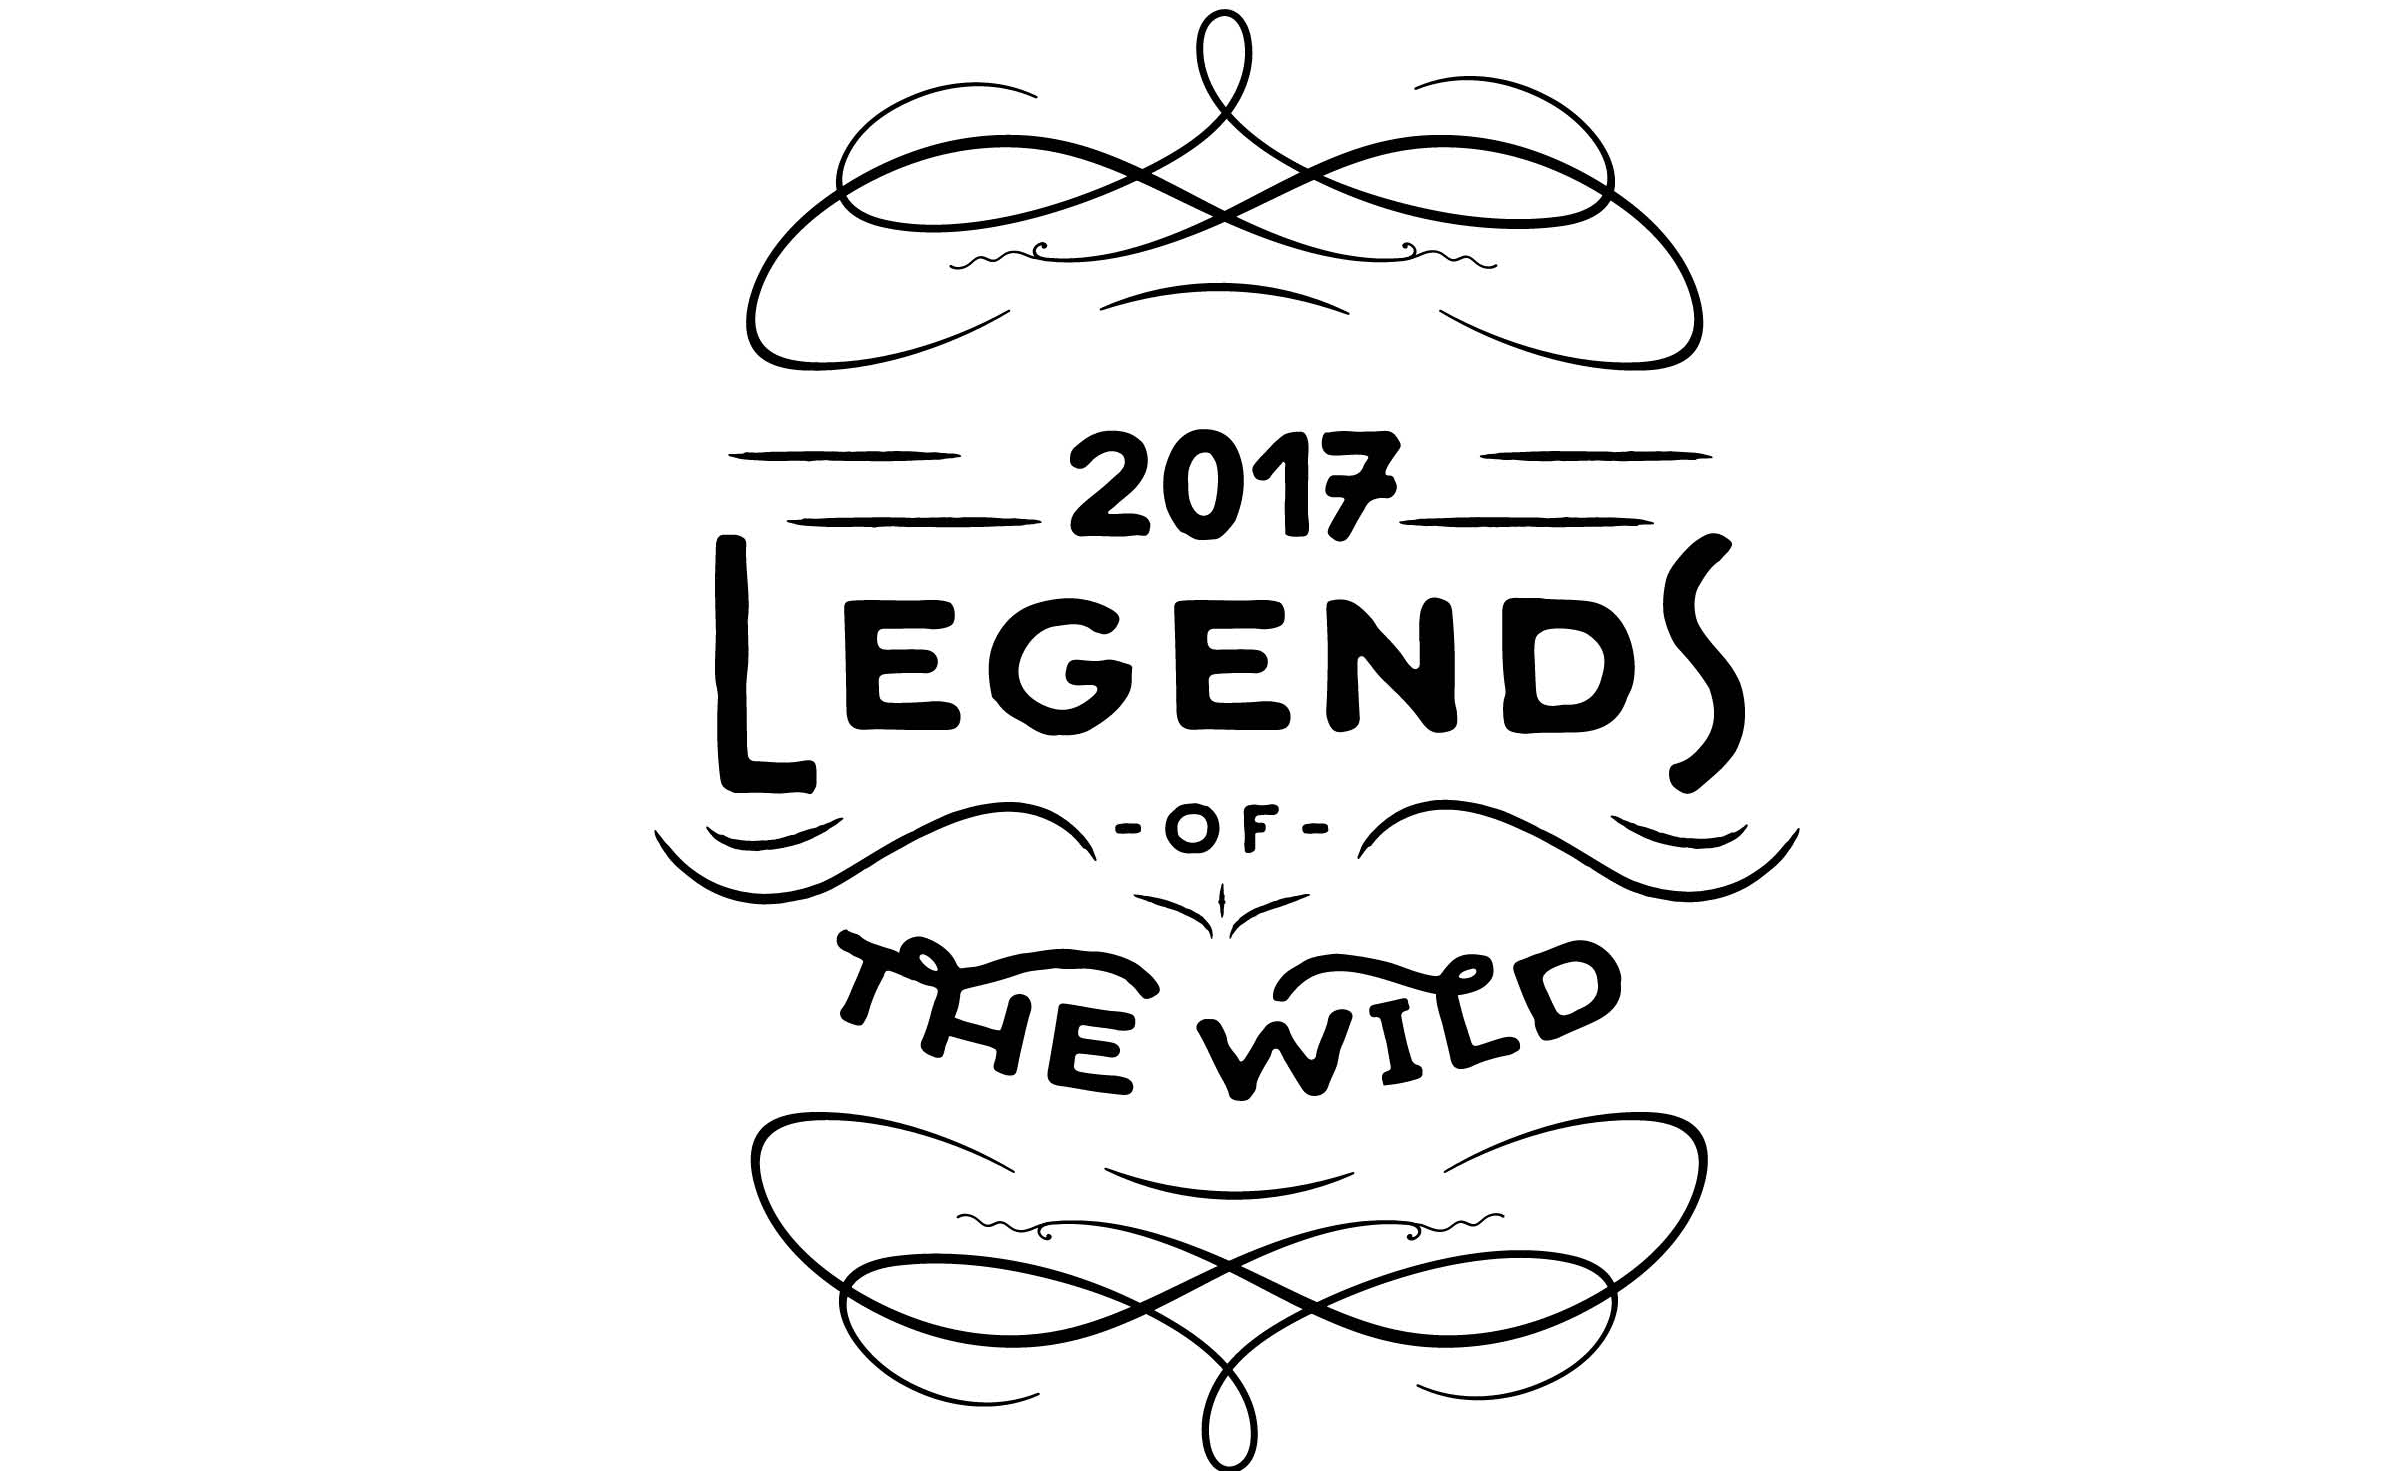 Legends 2017 logo.jpg